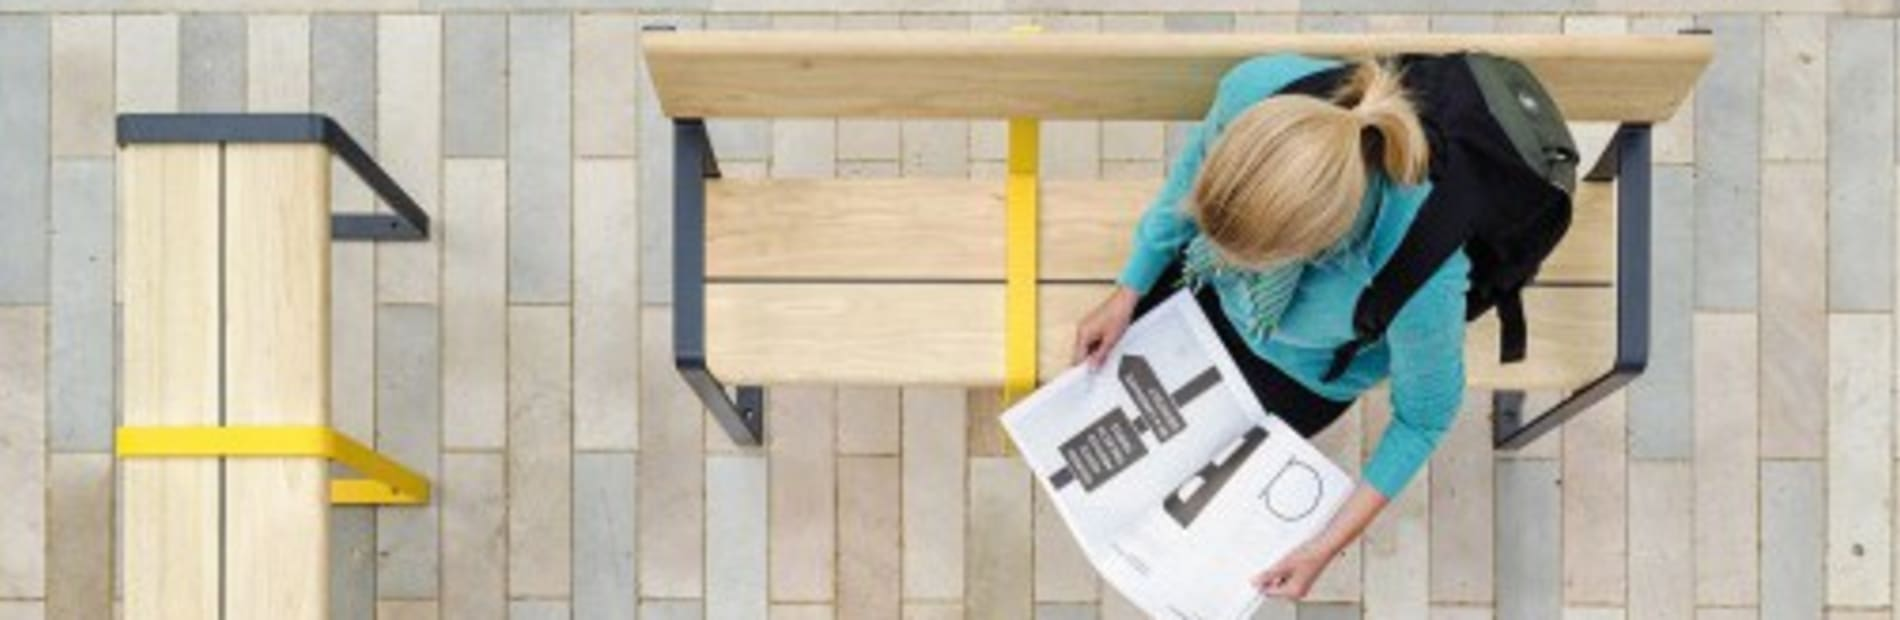 A woman sat on a wooden bench reading a brochure. The bench is a square with natural stone paving.